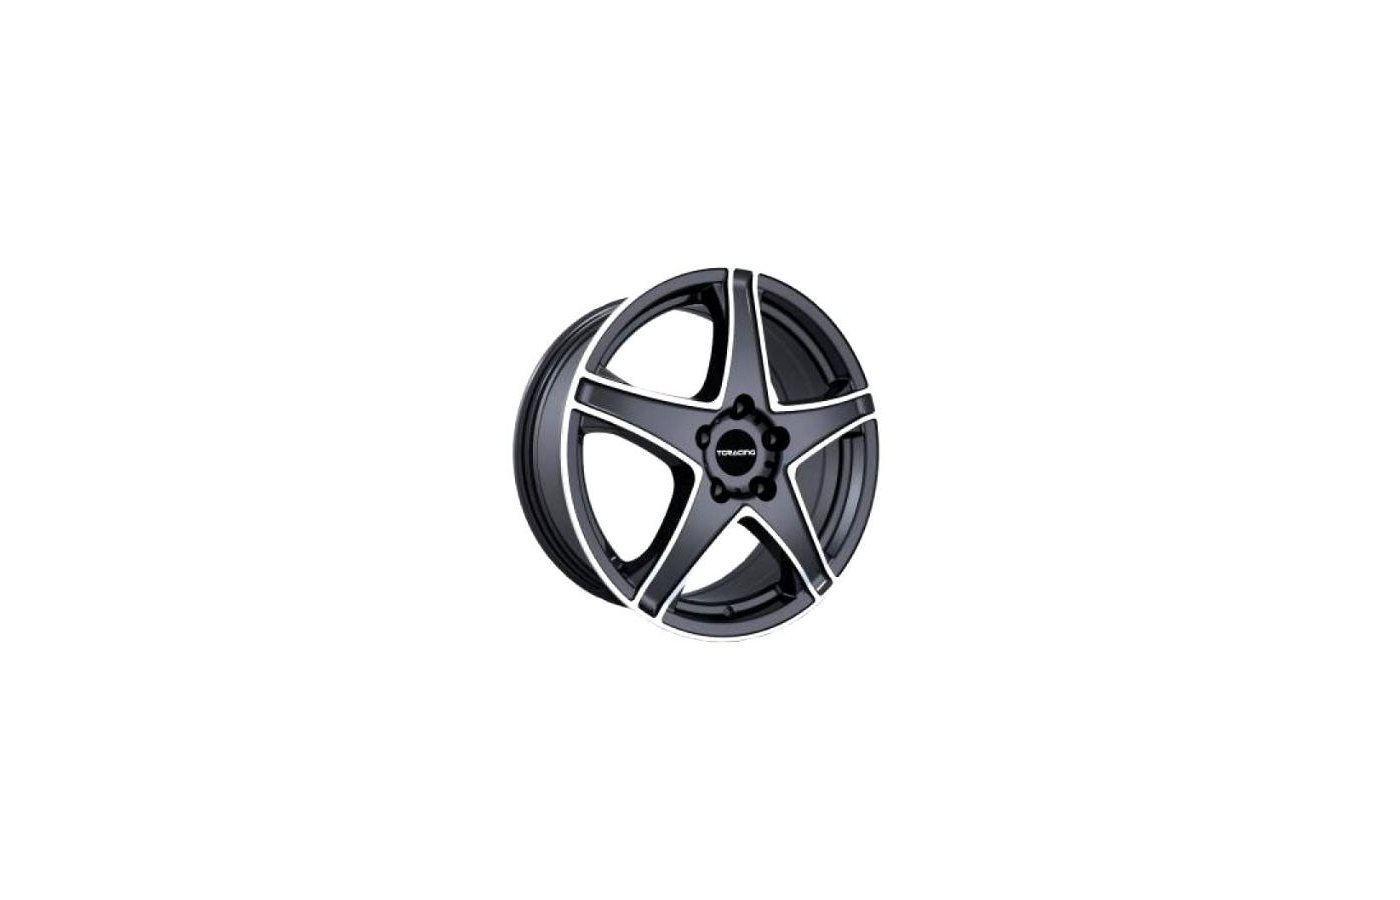 Диск TG Racing L012 7x17/5x110 D65.1 ET38 GM Pol